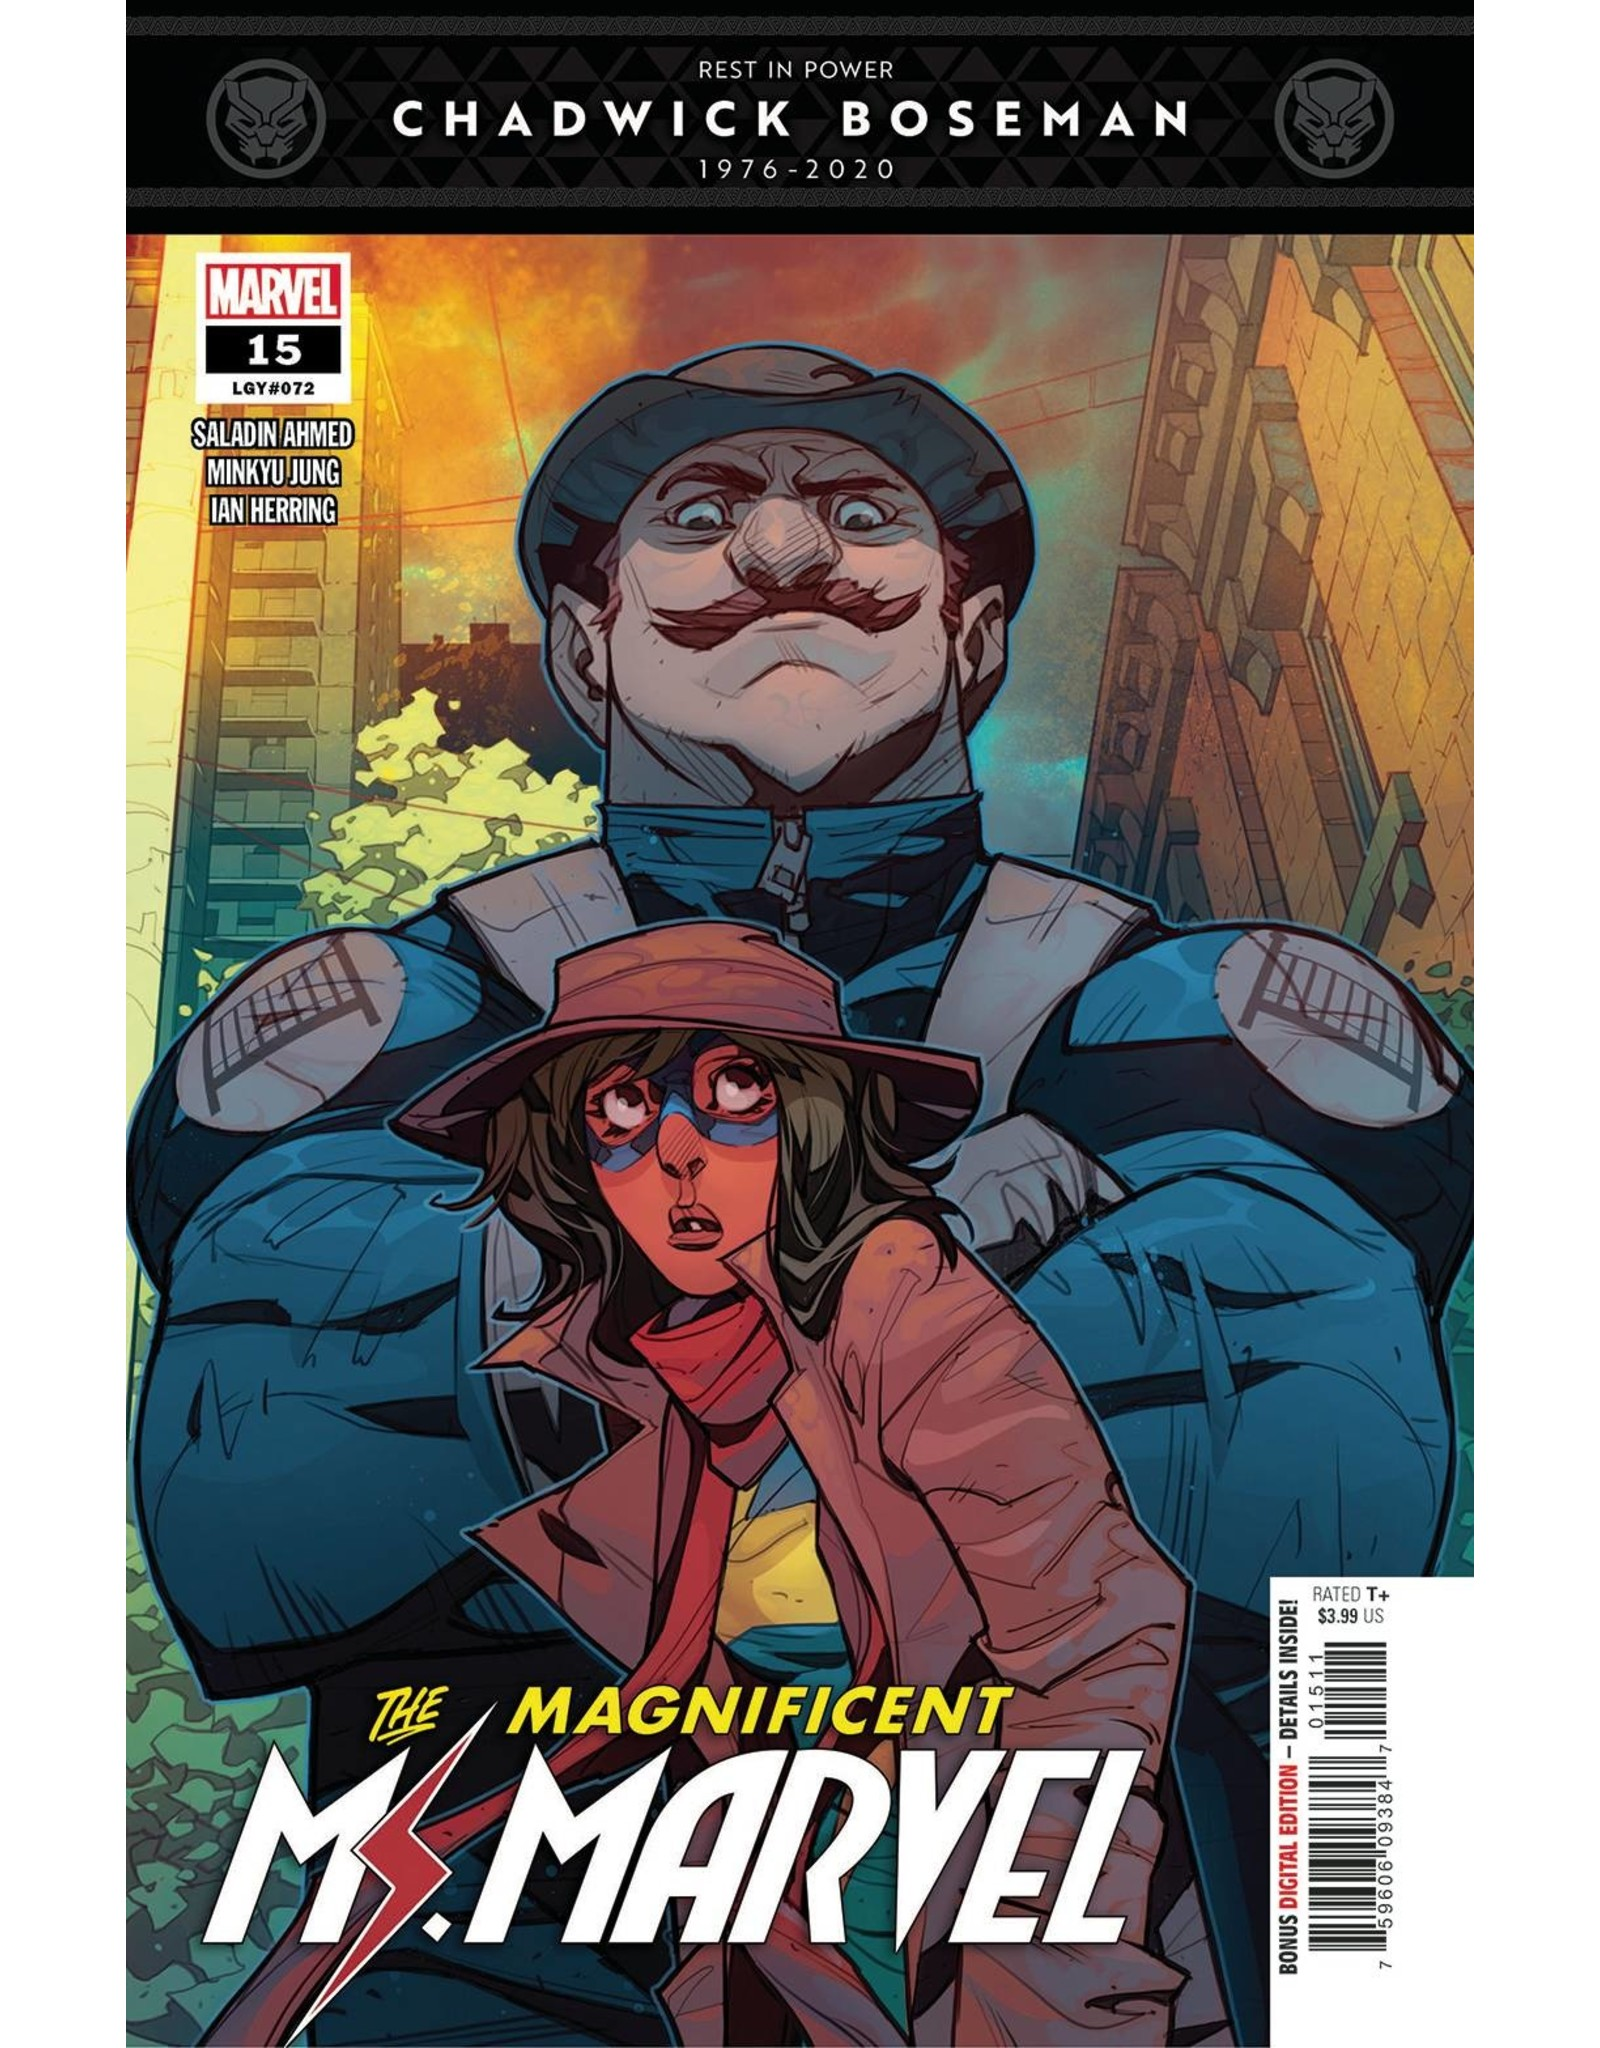 MARVEL COMICS MAGNIFICENT MS MARVEL #15 OUT